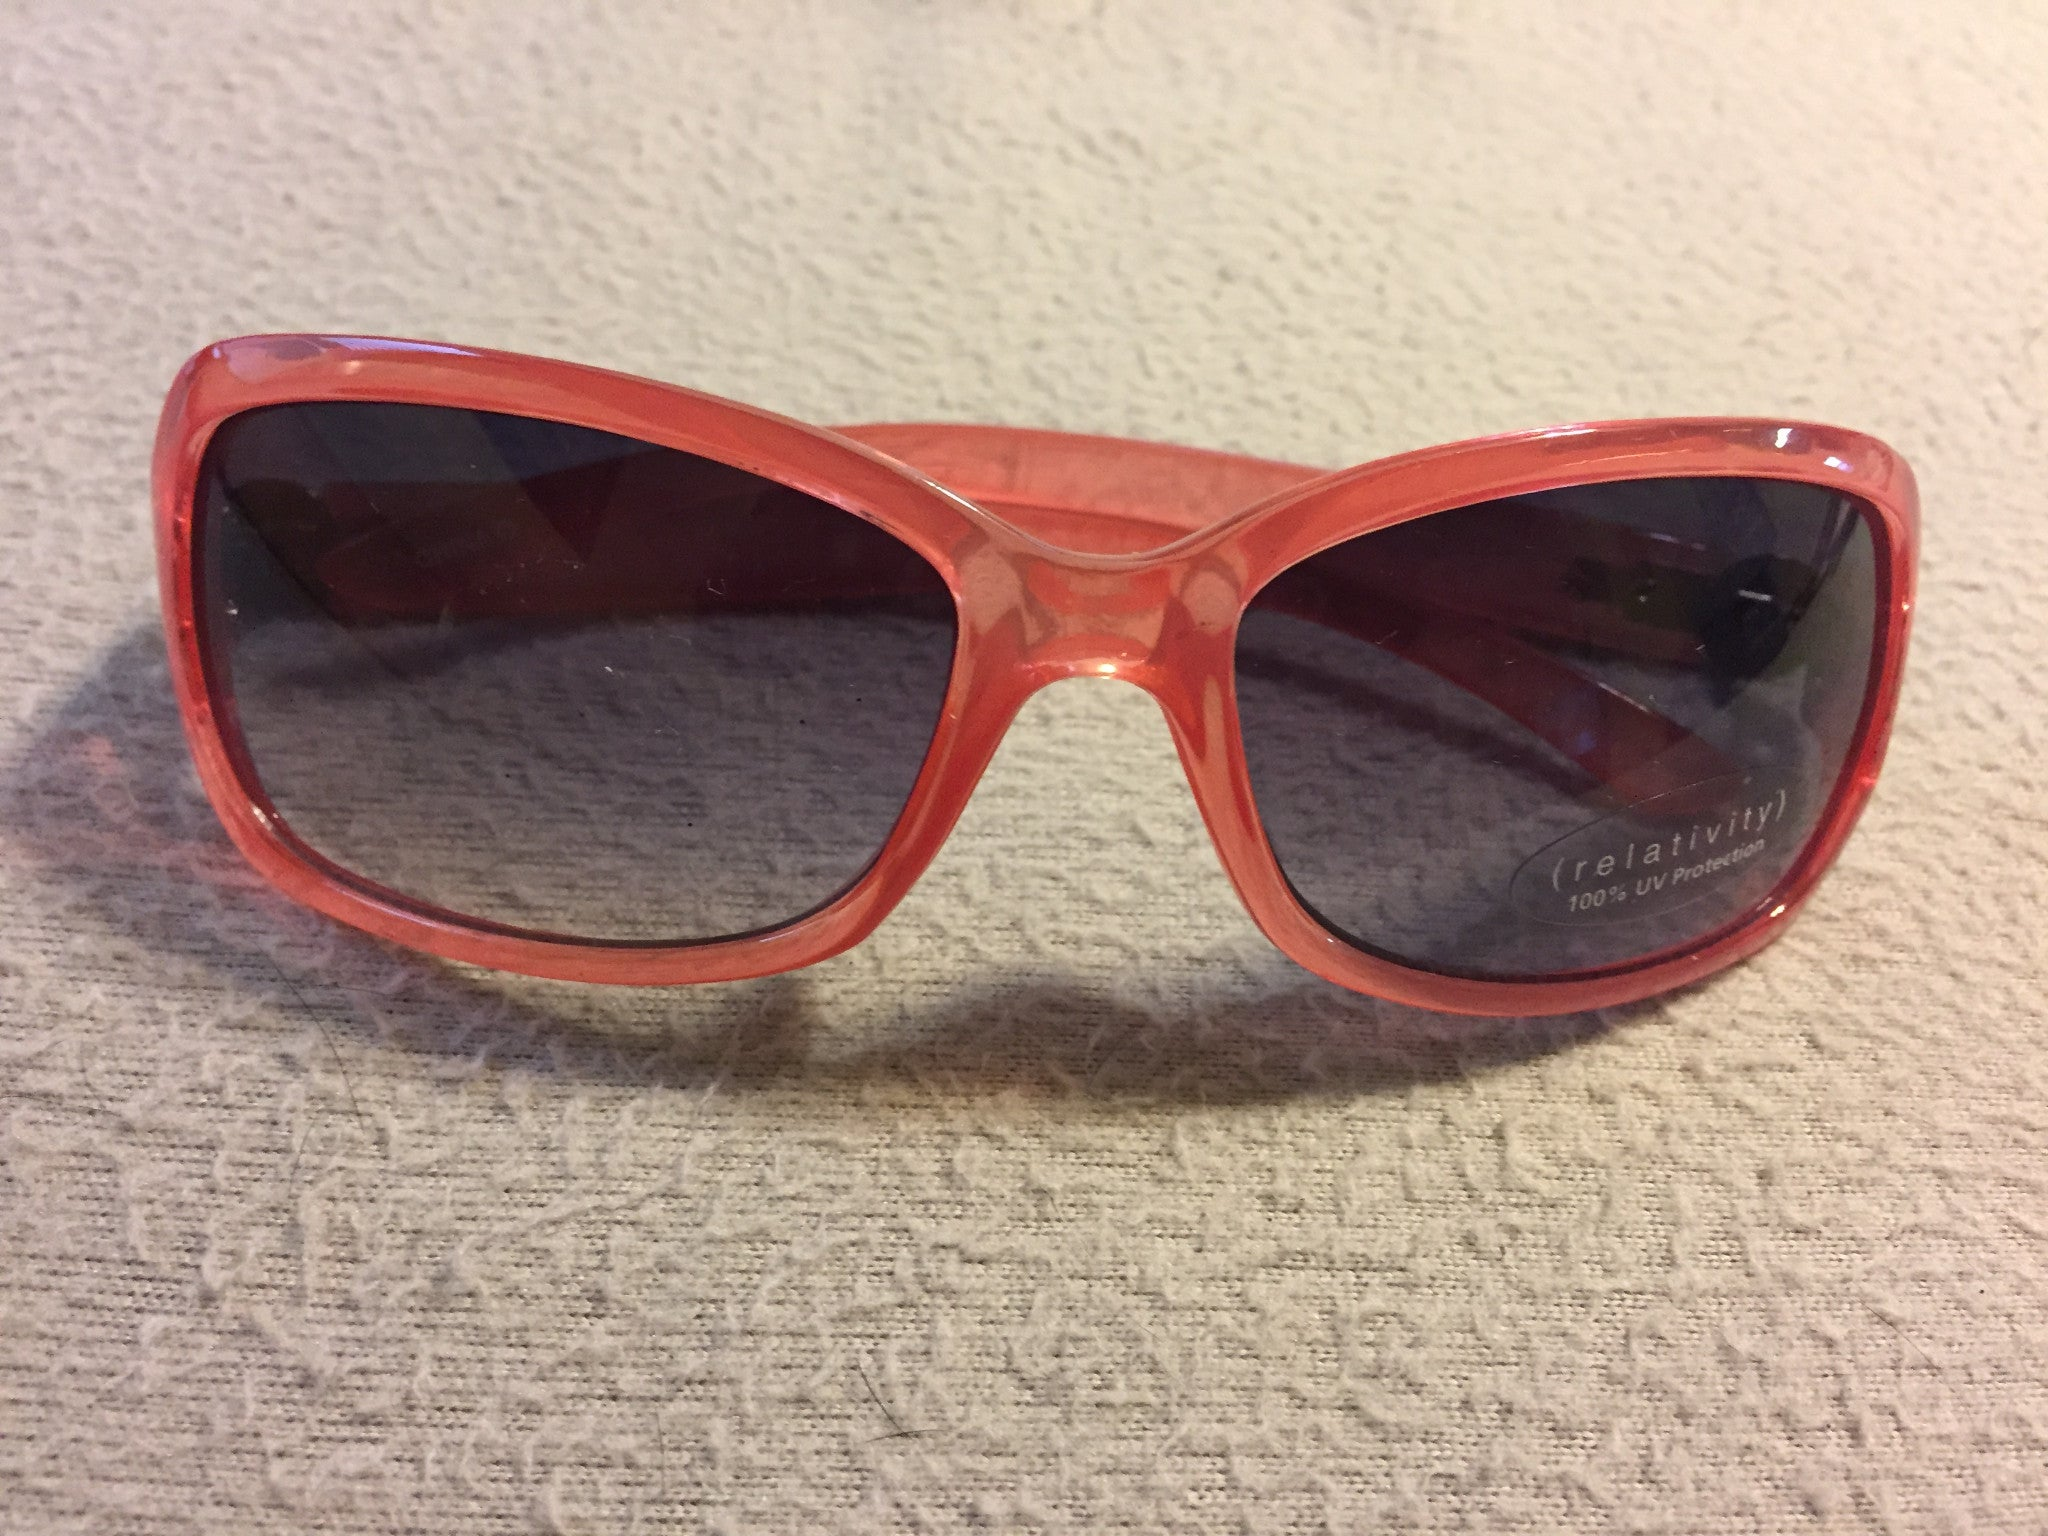 Relativity Pink Sunglasses 100% UV Protection